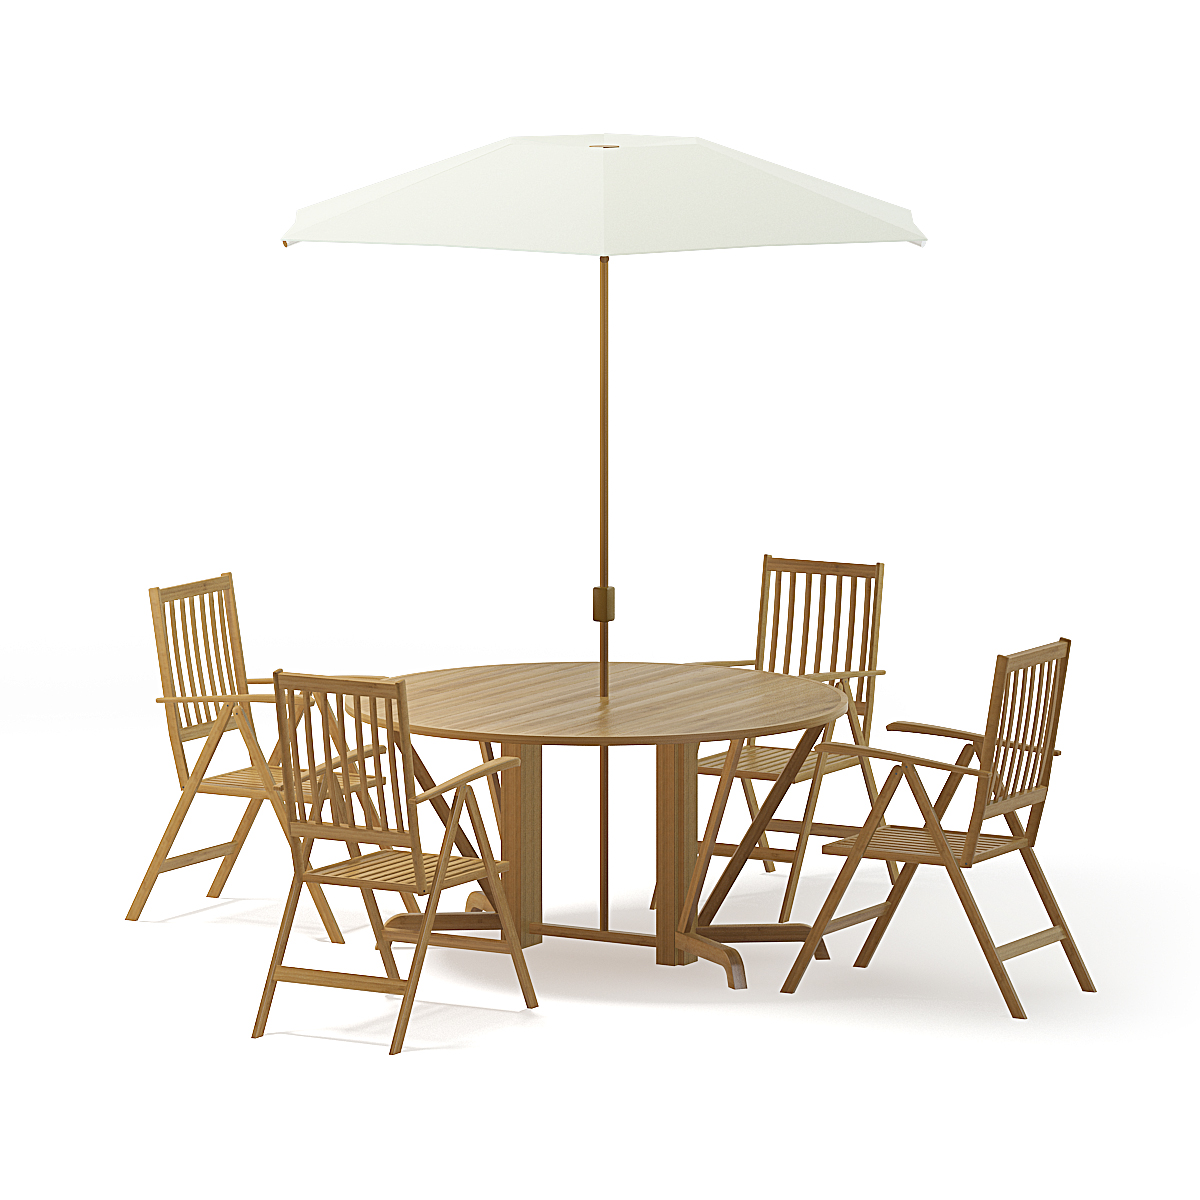 Garden Table Set 3D Model